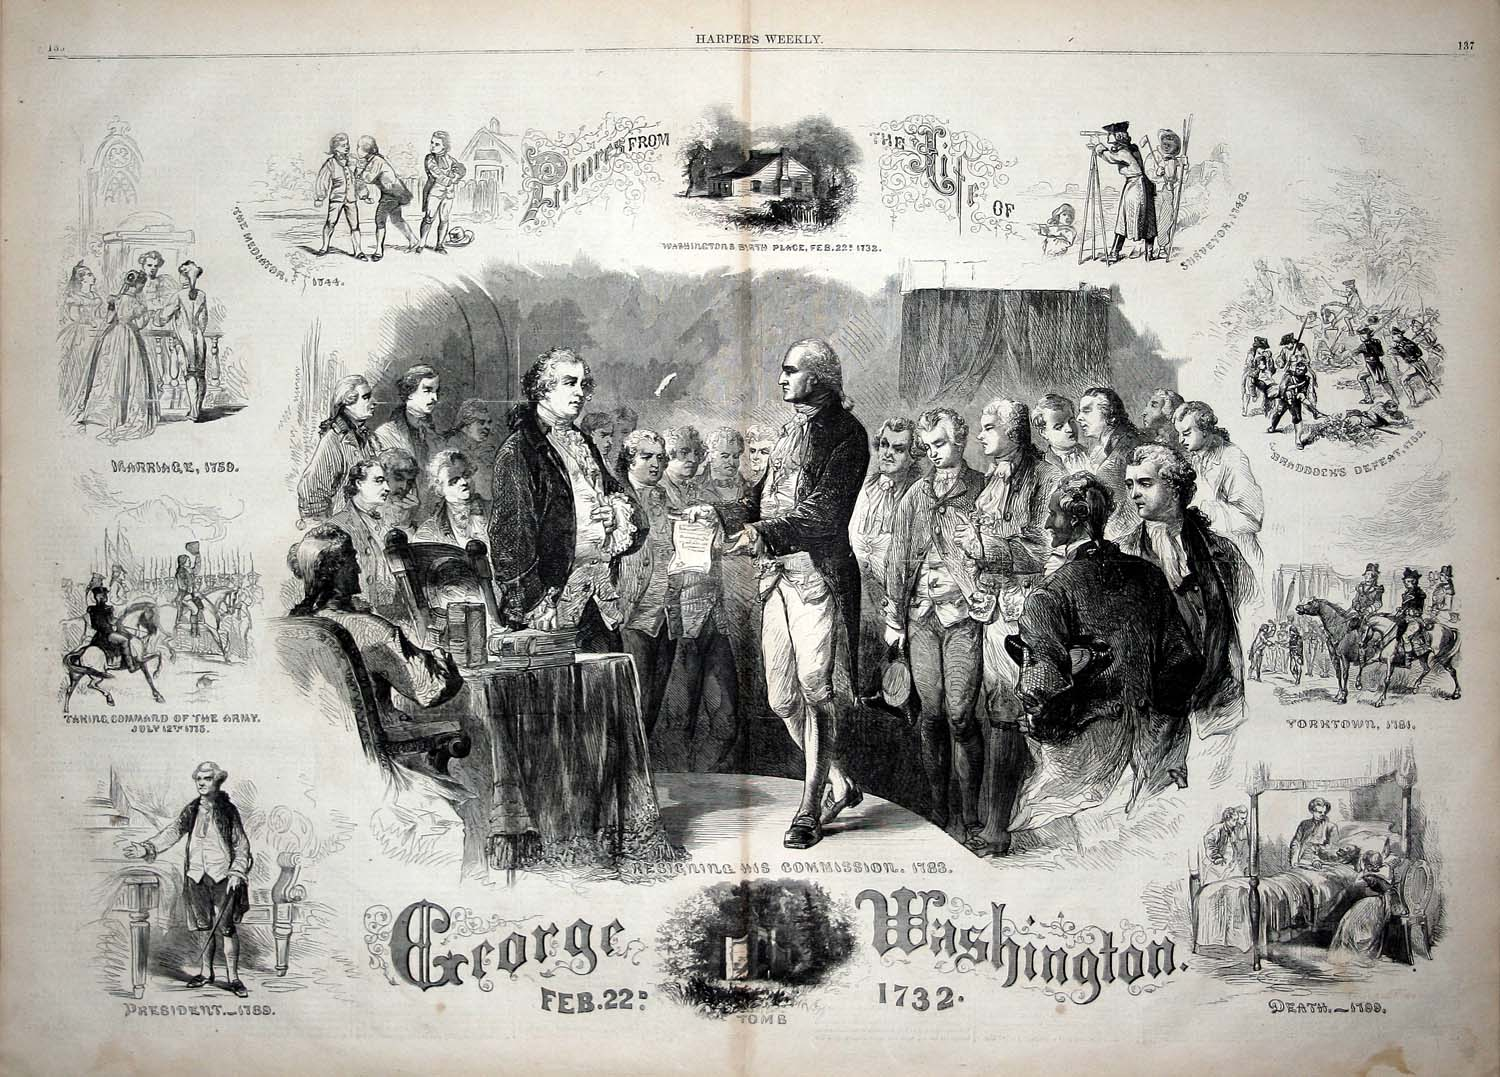 http://www.sonofthesouth.net/leefoundation/civil-war/1864/february/george-washington.jpg